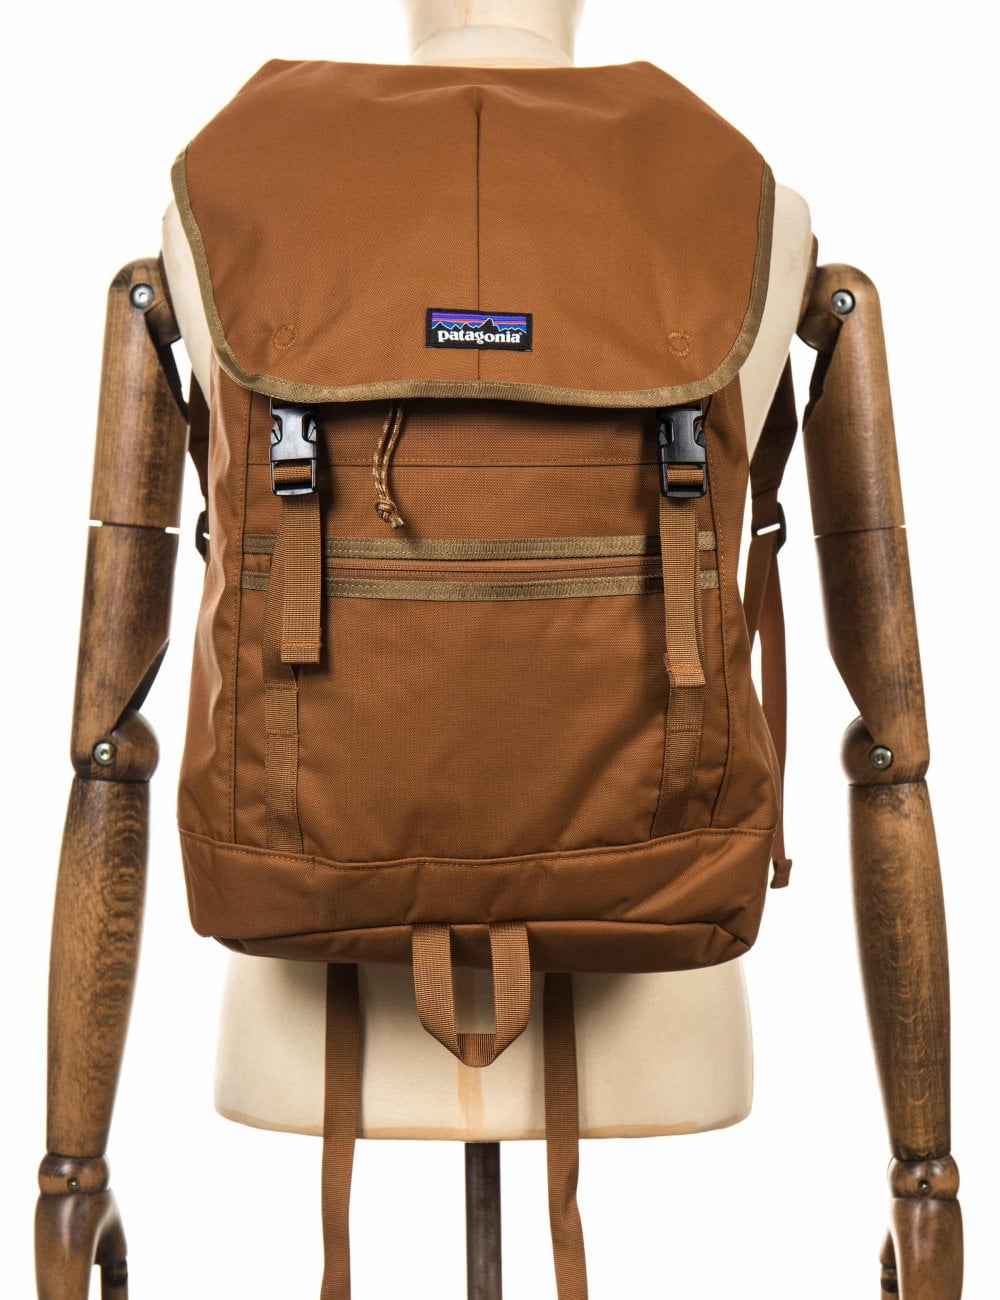 099089b8c6 Patagonia Arbor Classic 25L Backpack - Bence Brown - Accessories ...